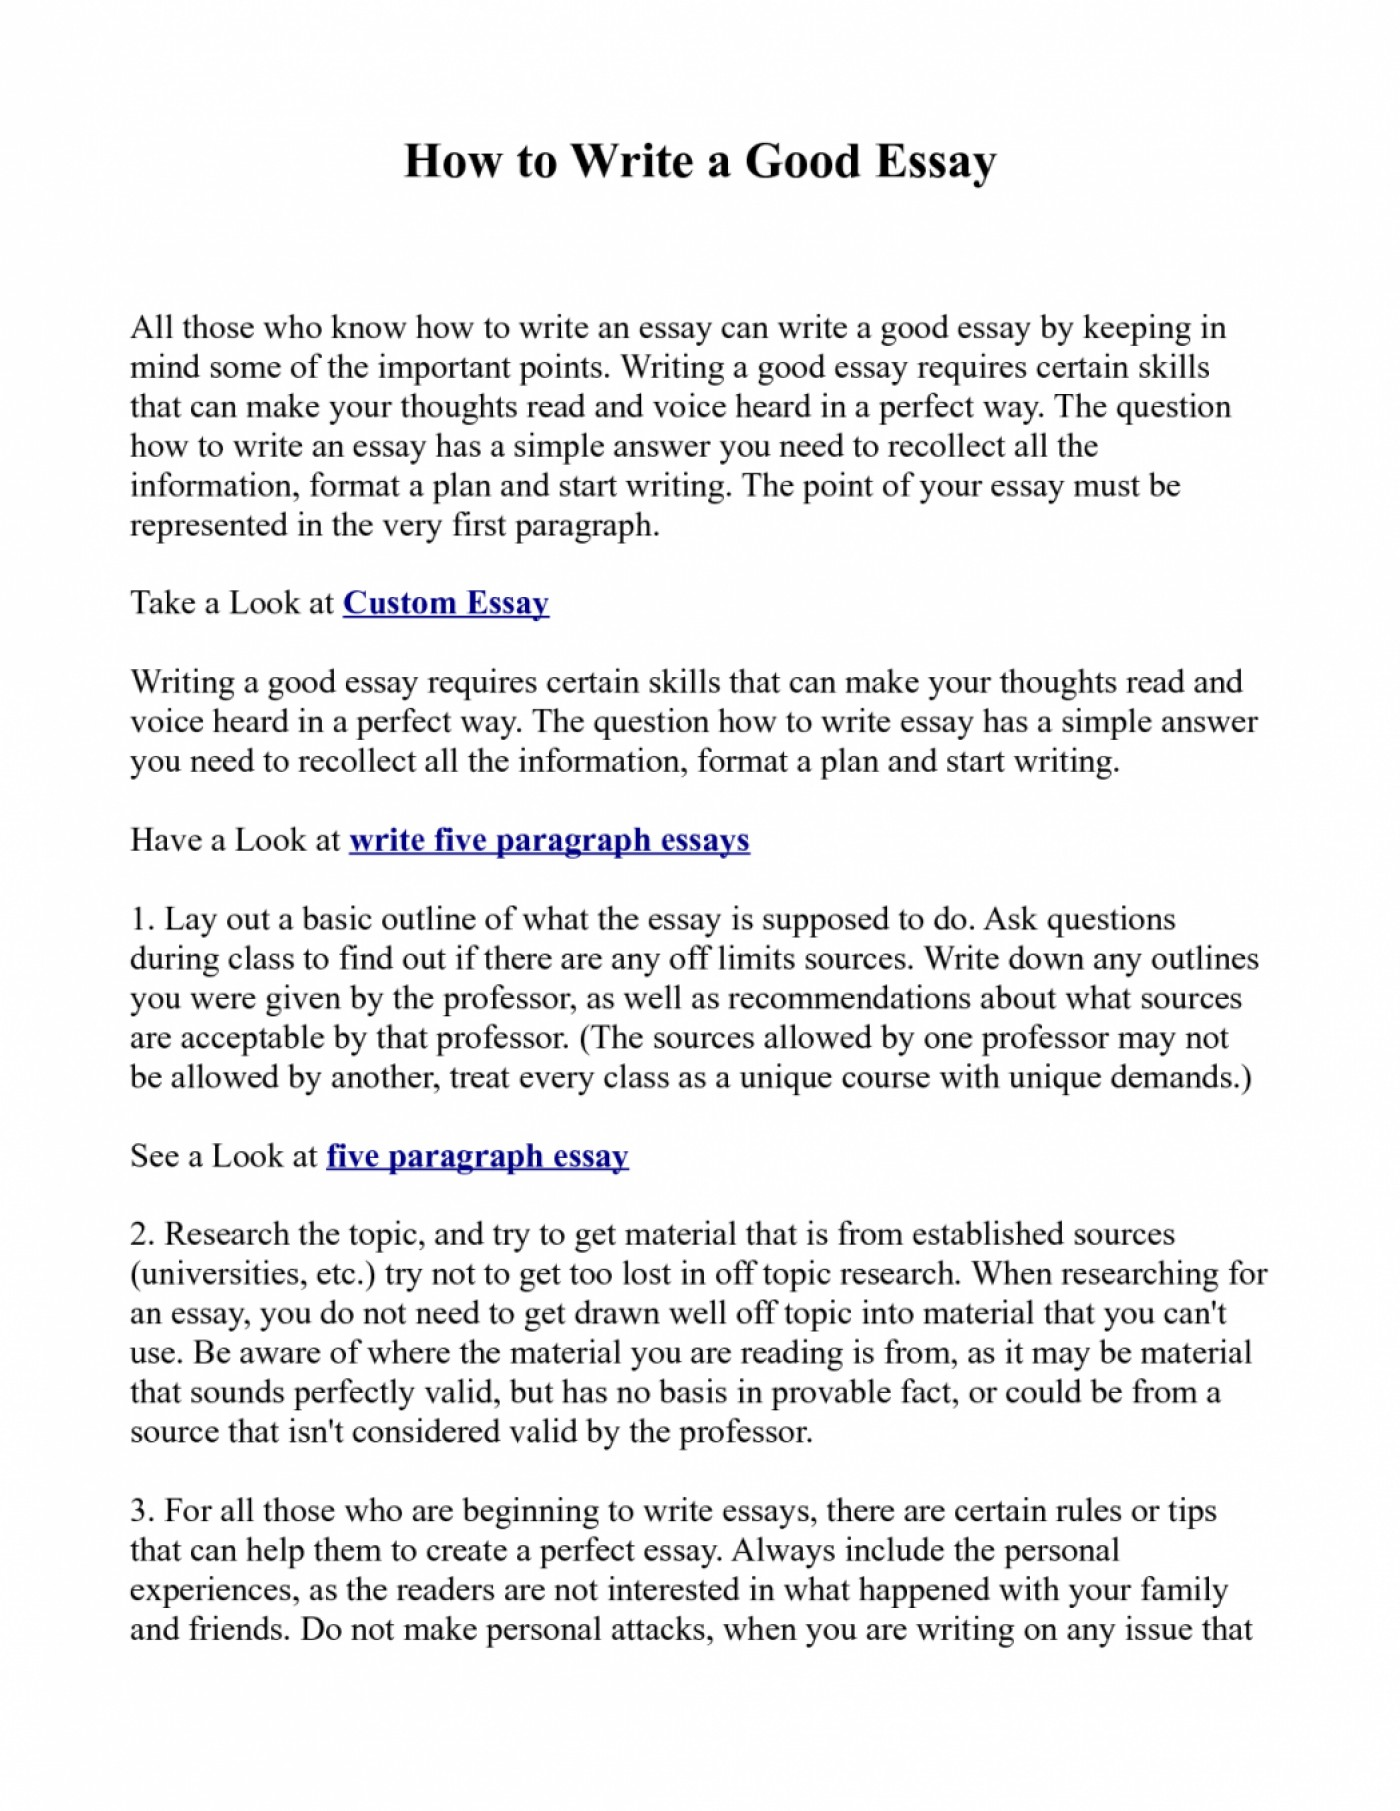 006 Essay Example How To Write Great Essays An Excellent The Perfect Easy Way Ex1id Best Awesome A Good For Scholarship Application Personal College Conclusion 1400